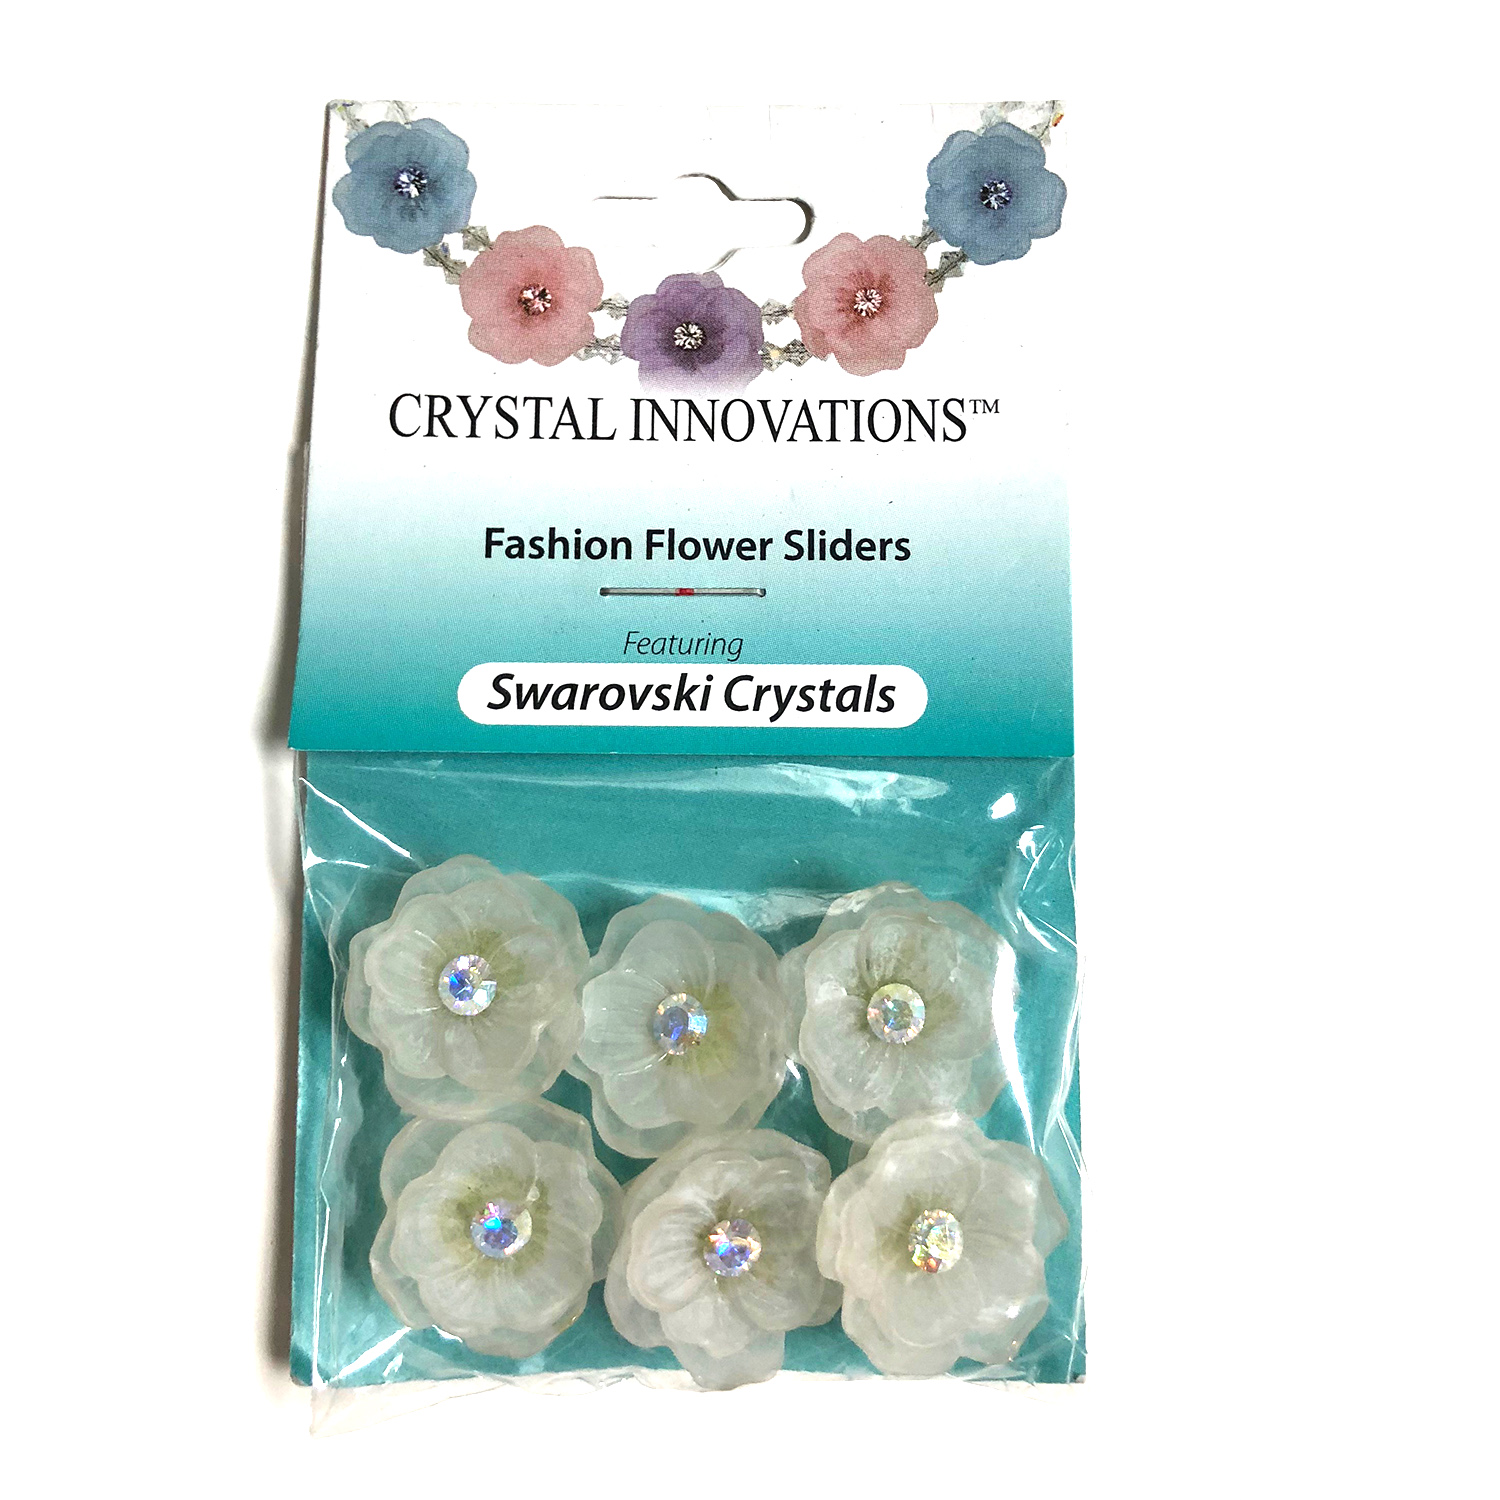 Crystal Innovations 3D Flower Sliders 18mm w/Swarovski Crystal